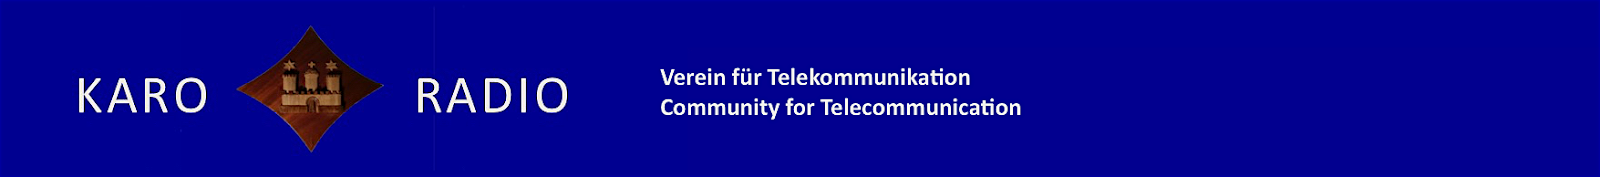 Karoradio Verein für Telekommunikation - Community for Telecommunication